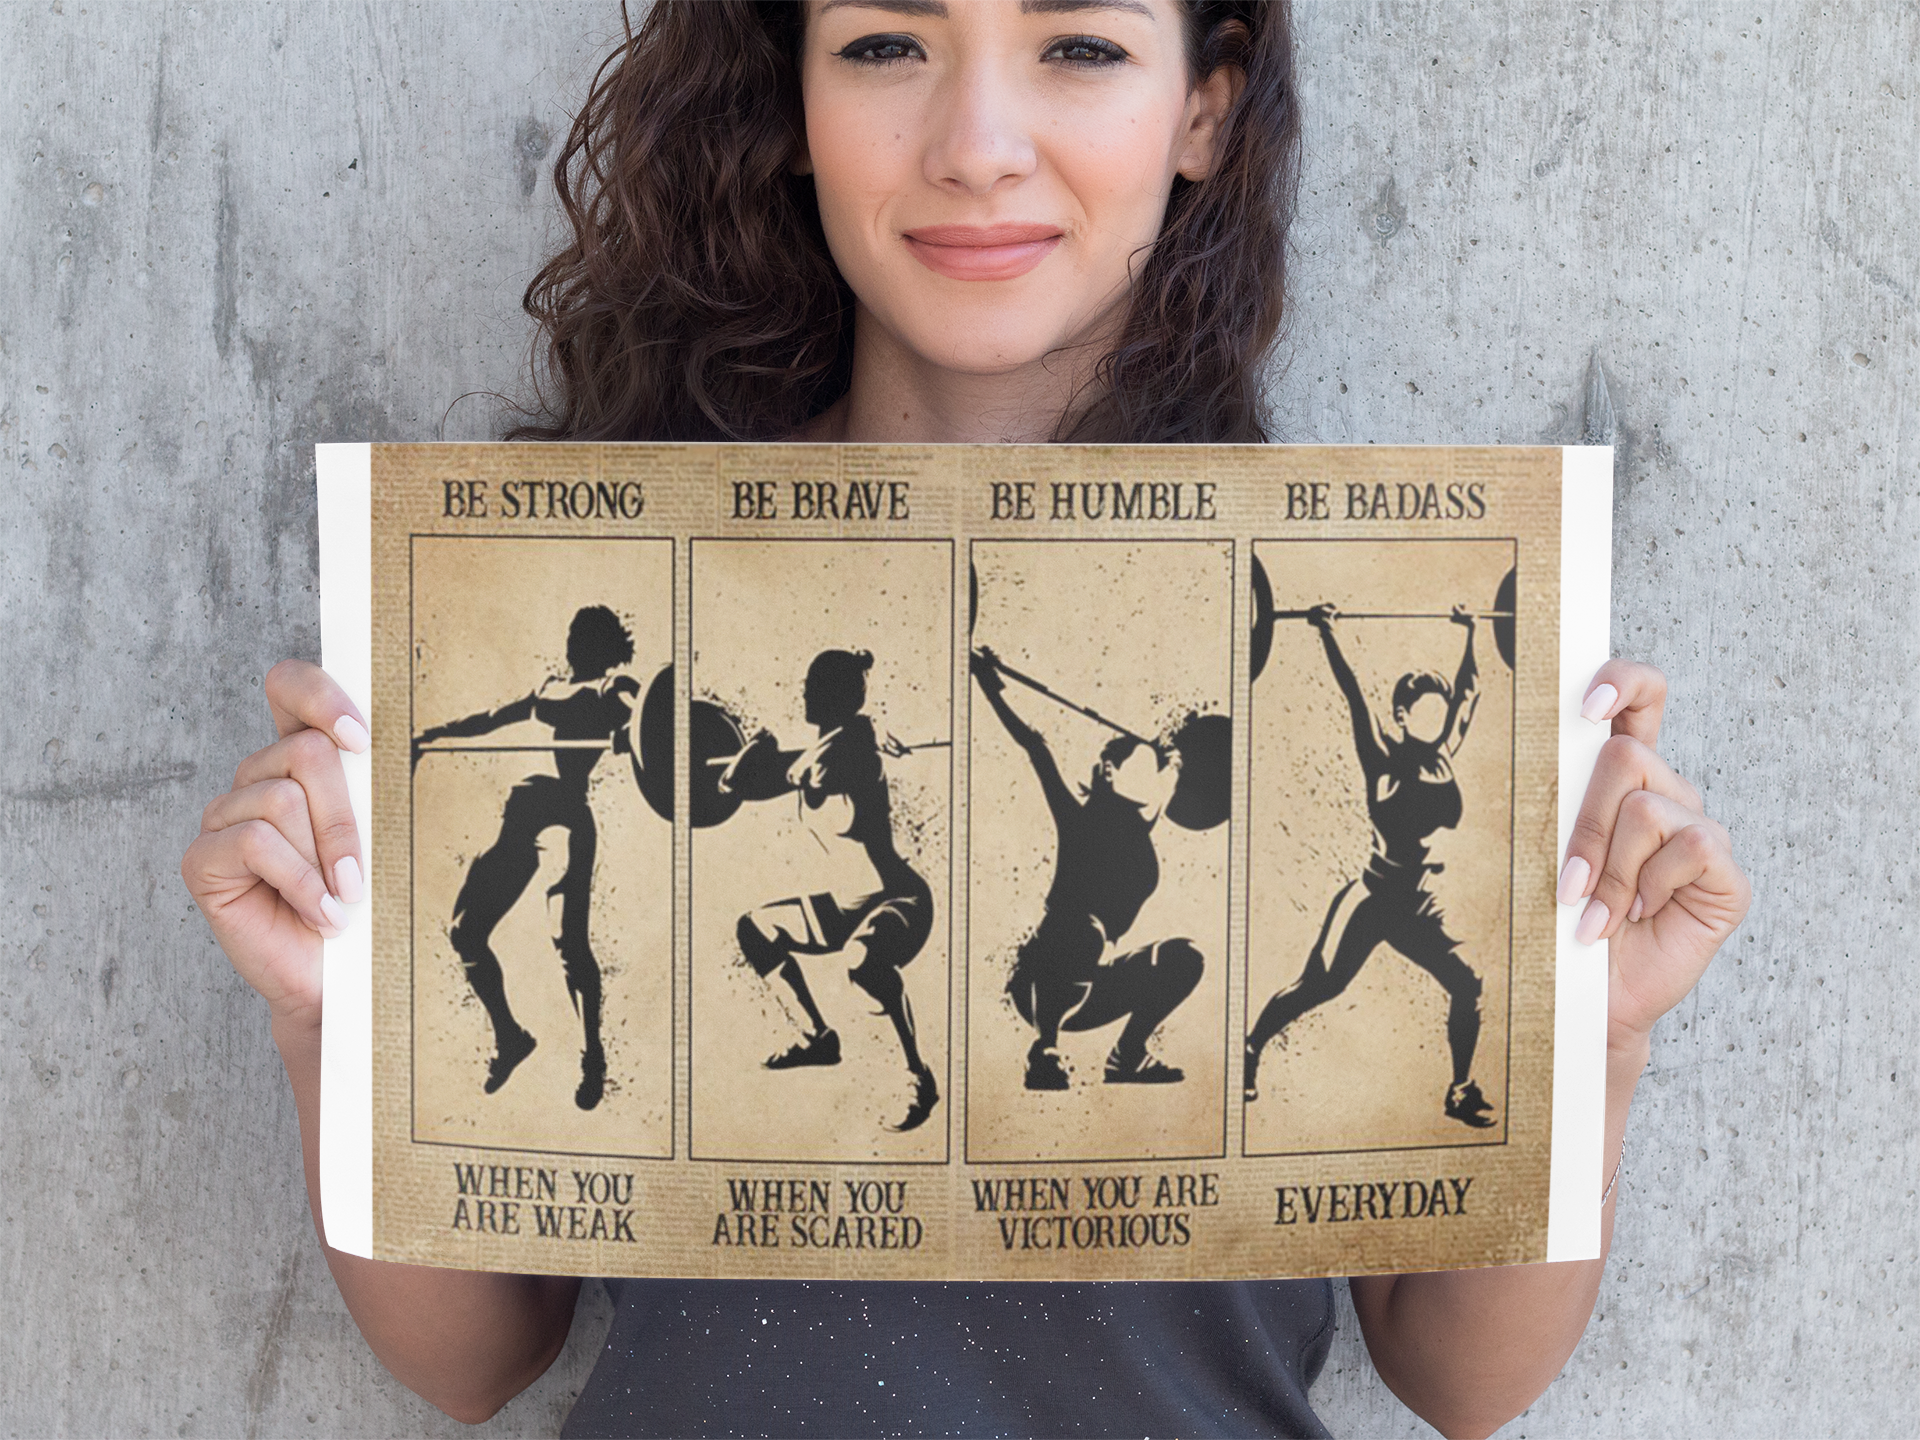 Weightlifting Women be strong be brave be humble be badass poster11